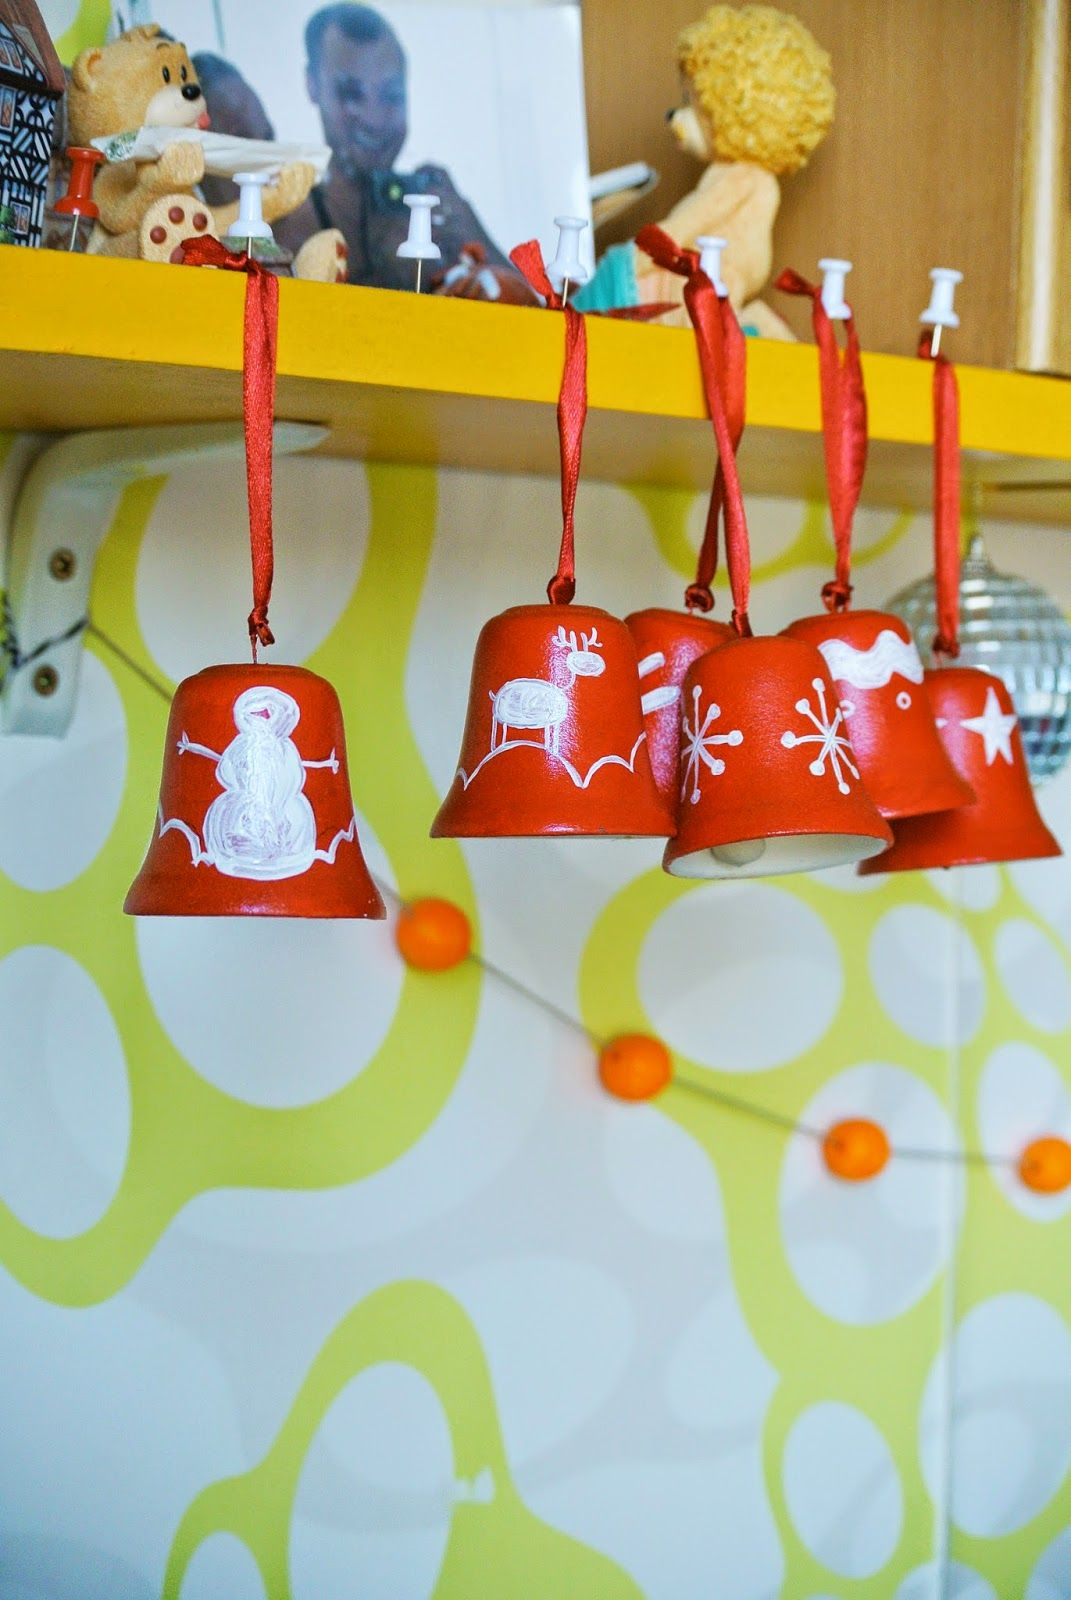 The Jingle bells Ornaments